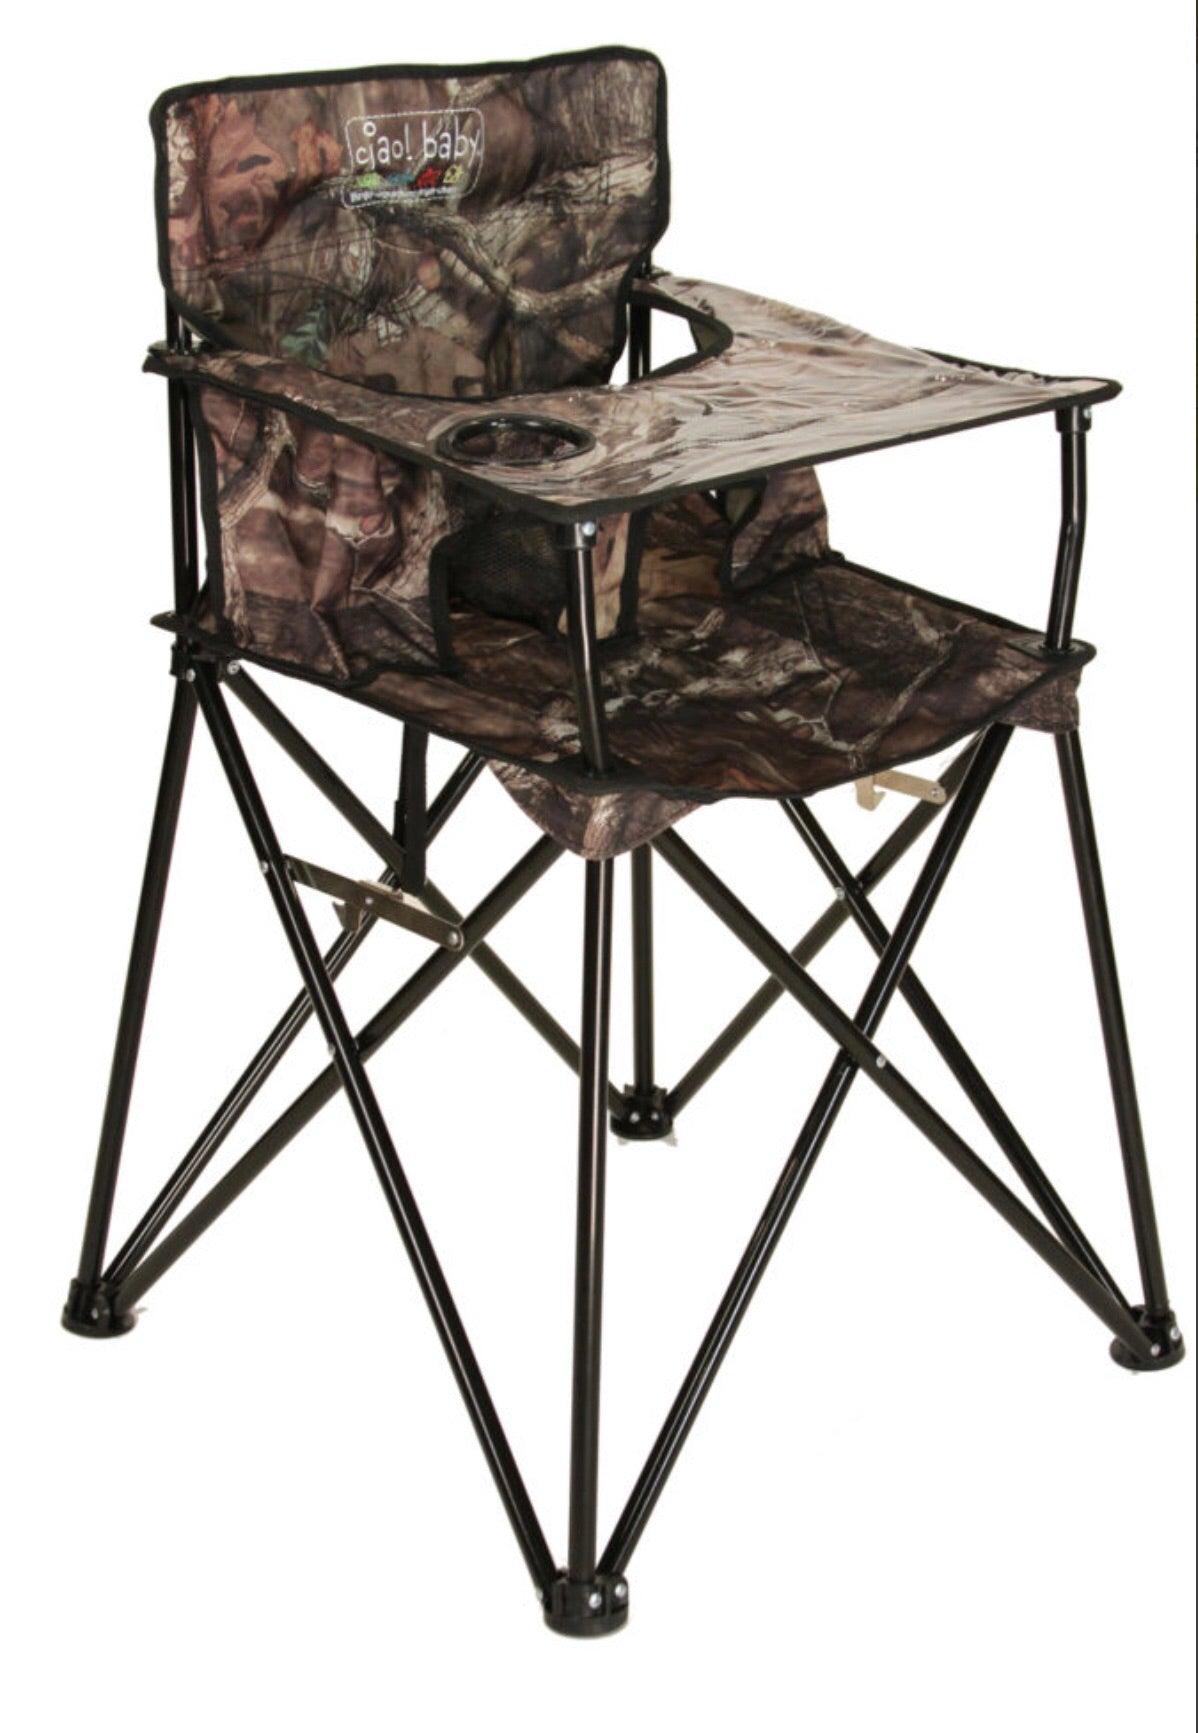 Superb Ciao Baby Mossy Oak Portable High Chair Gmtry Best Dining Table And Chair Ideas Images Gmtryco